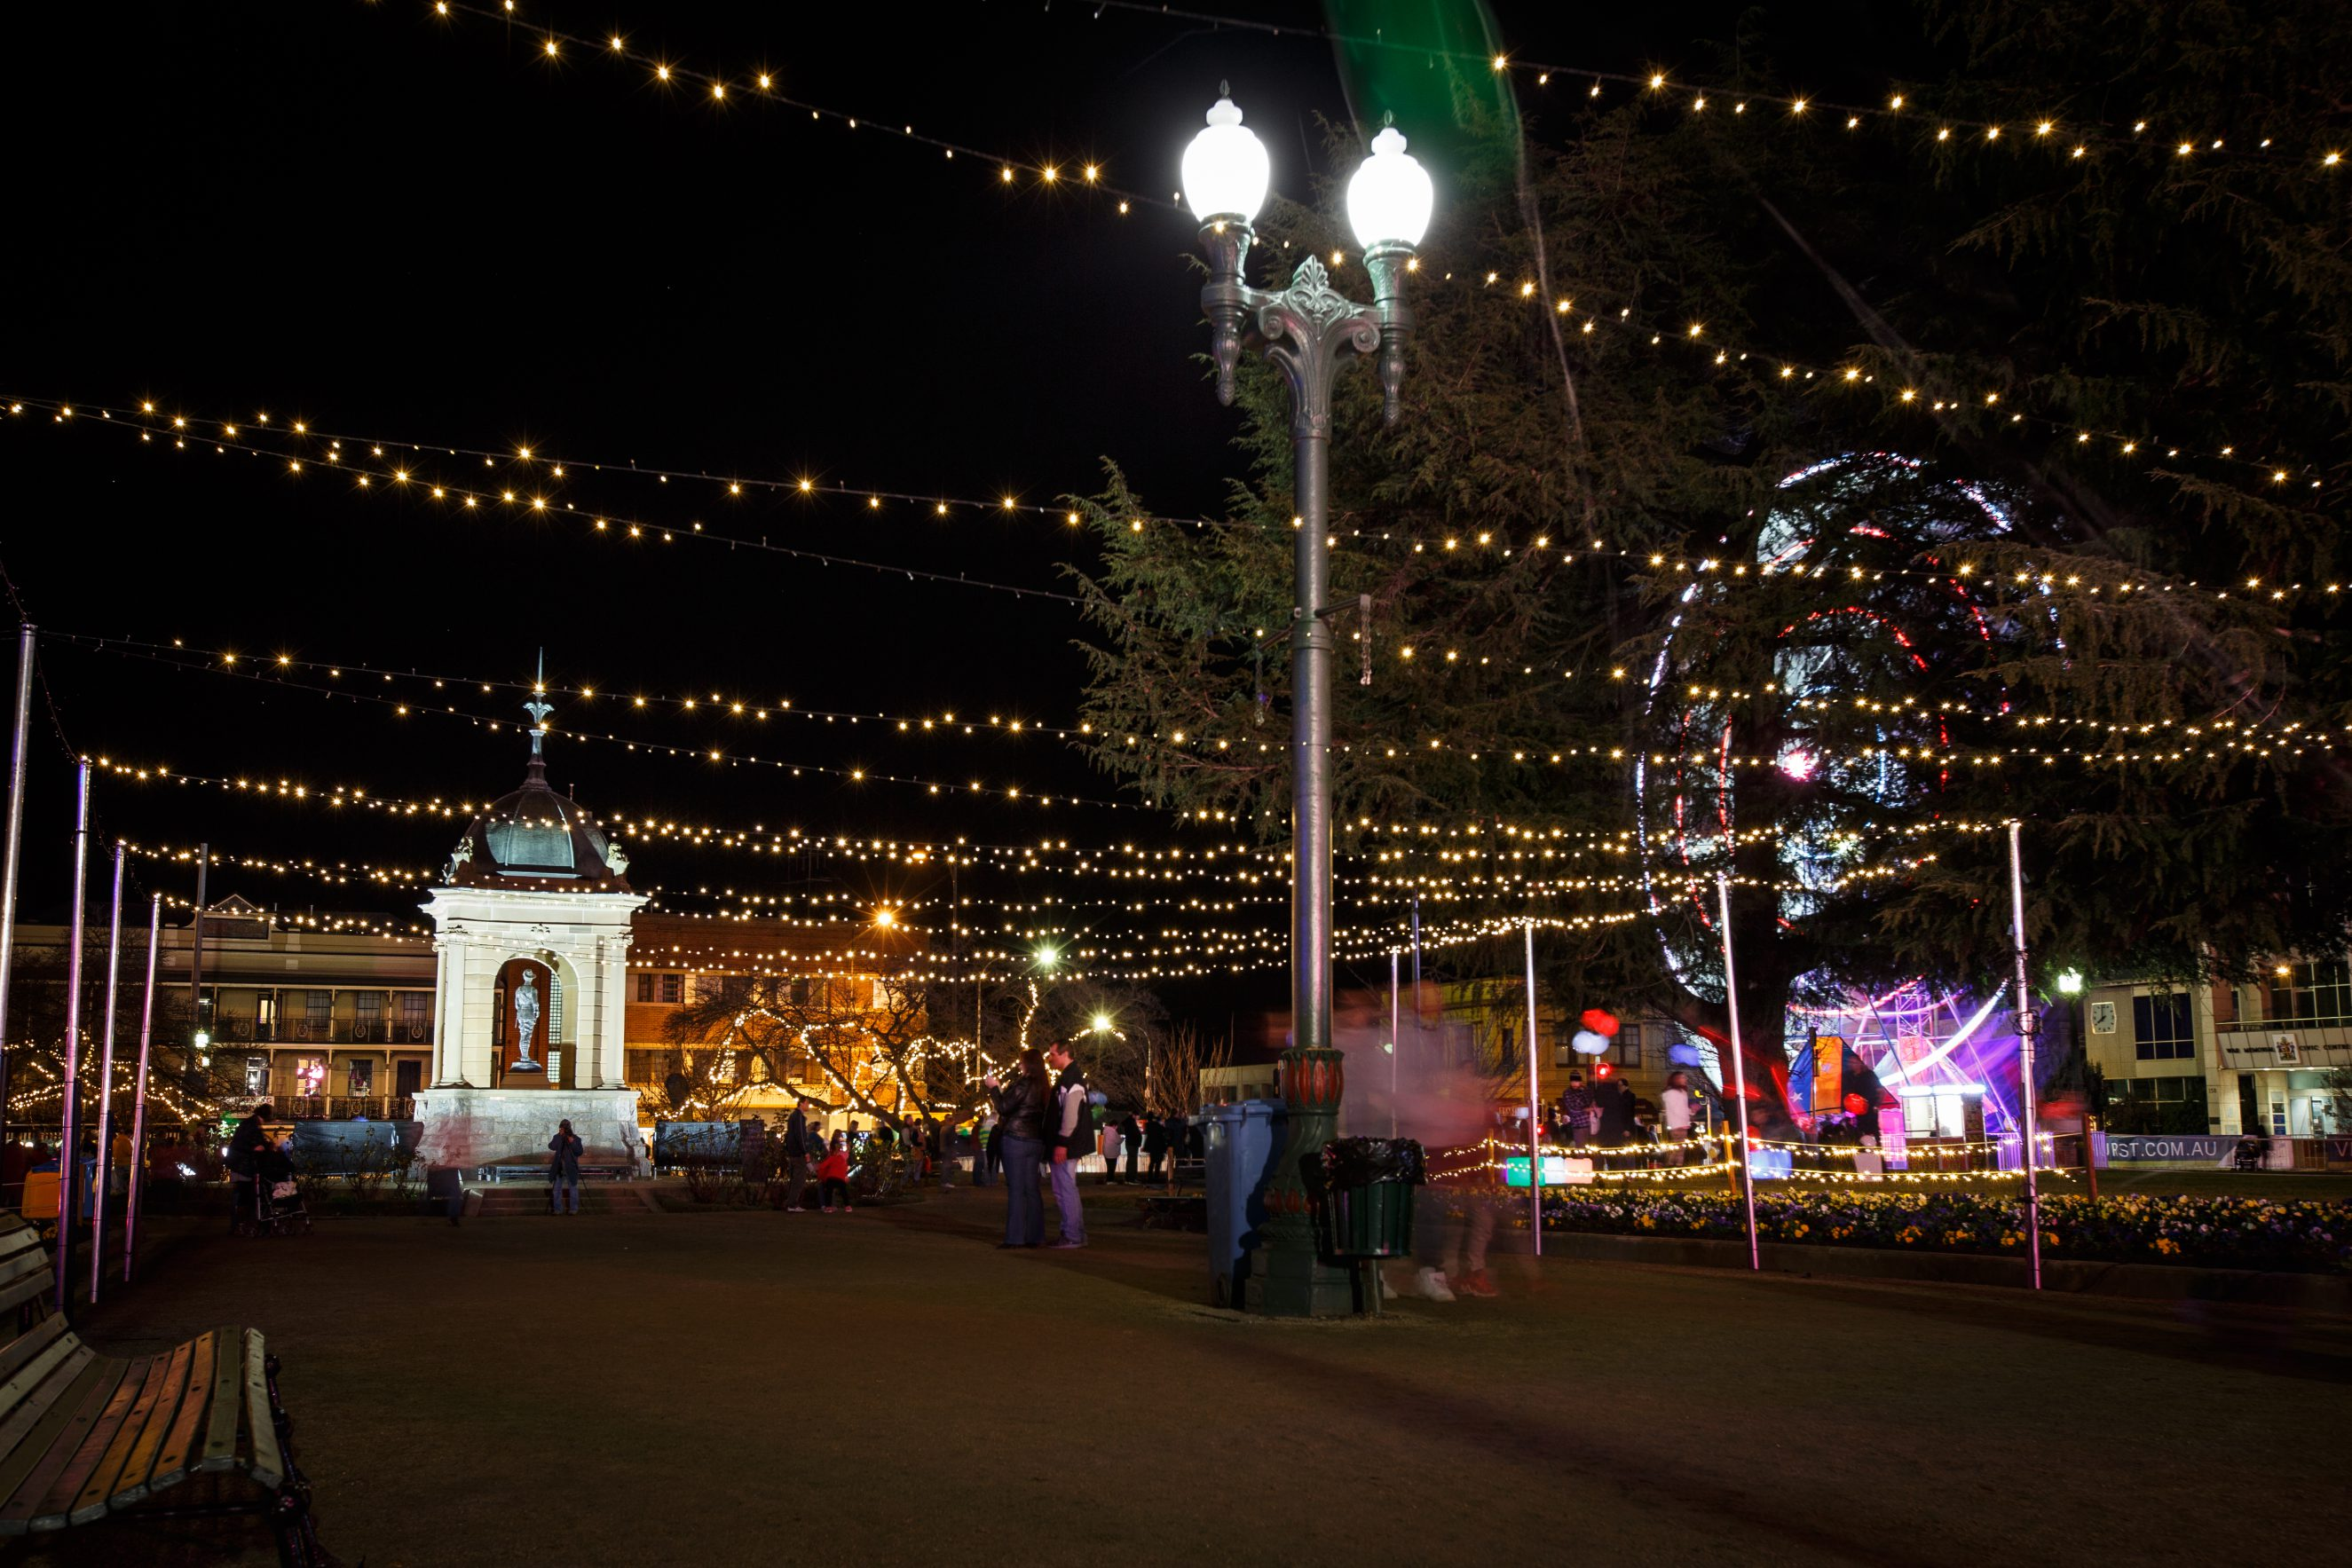 2016 – King's Parade Fairy Lights